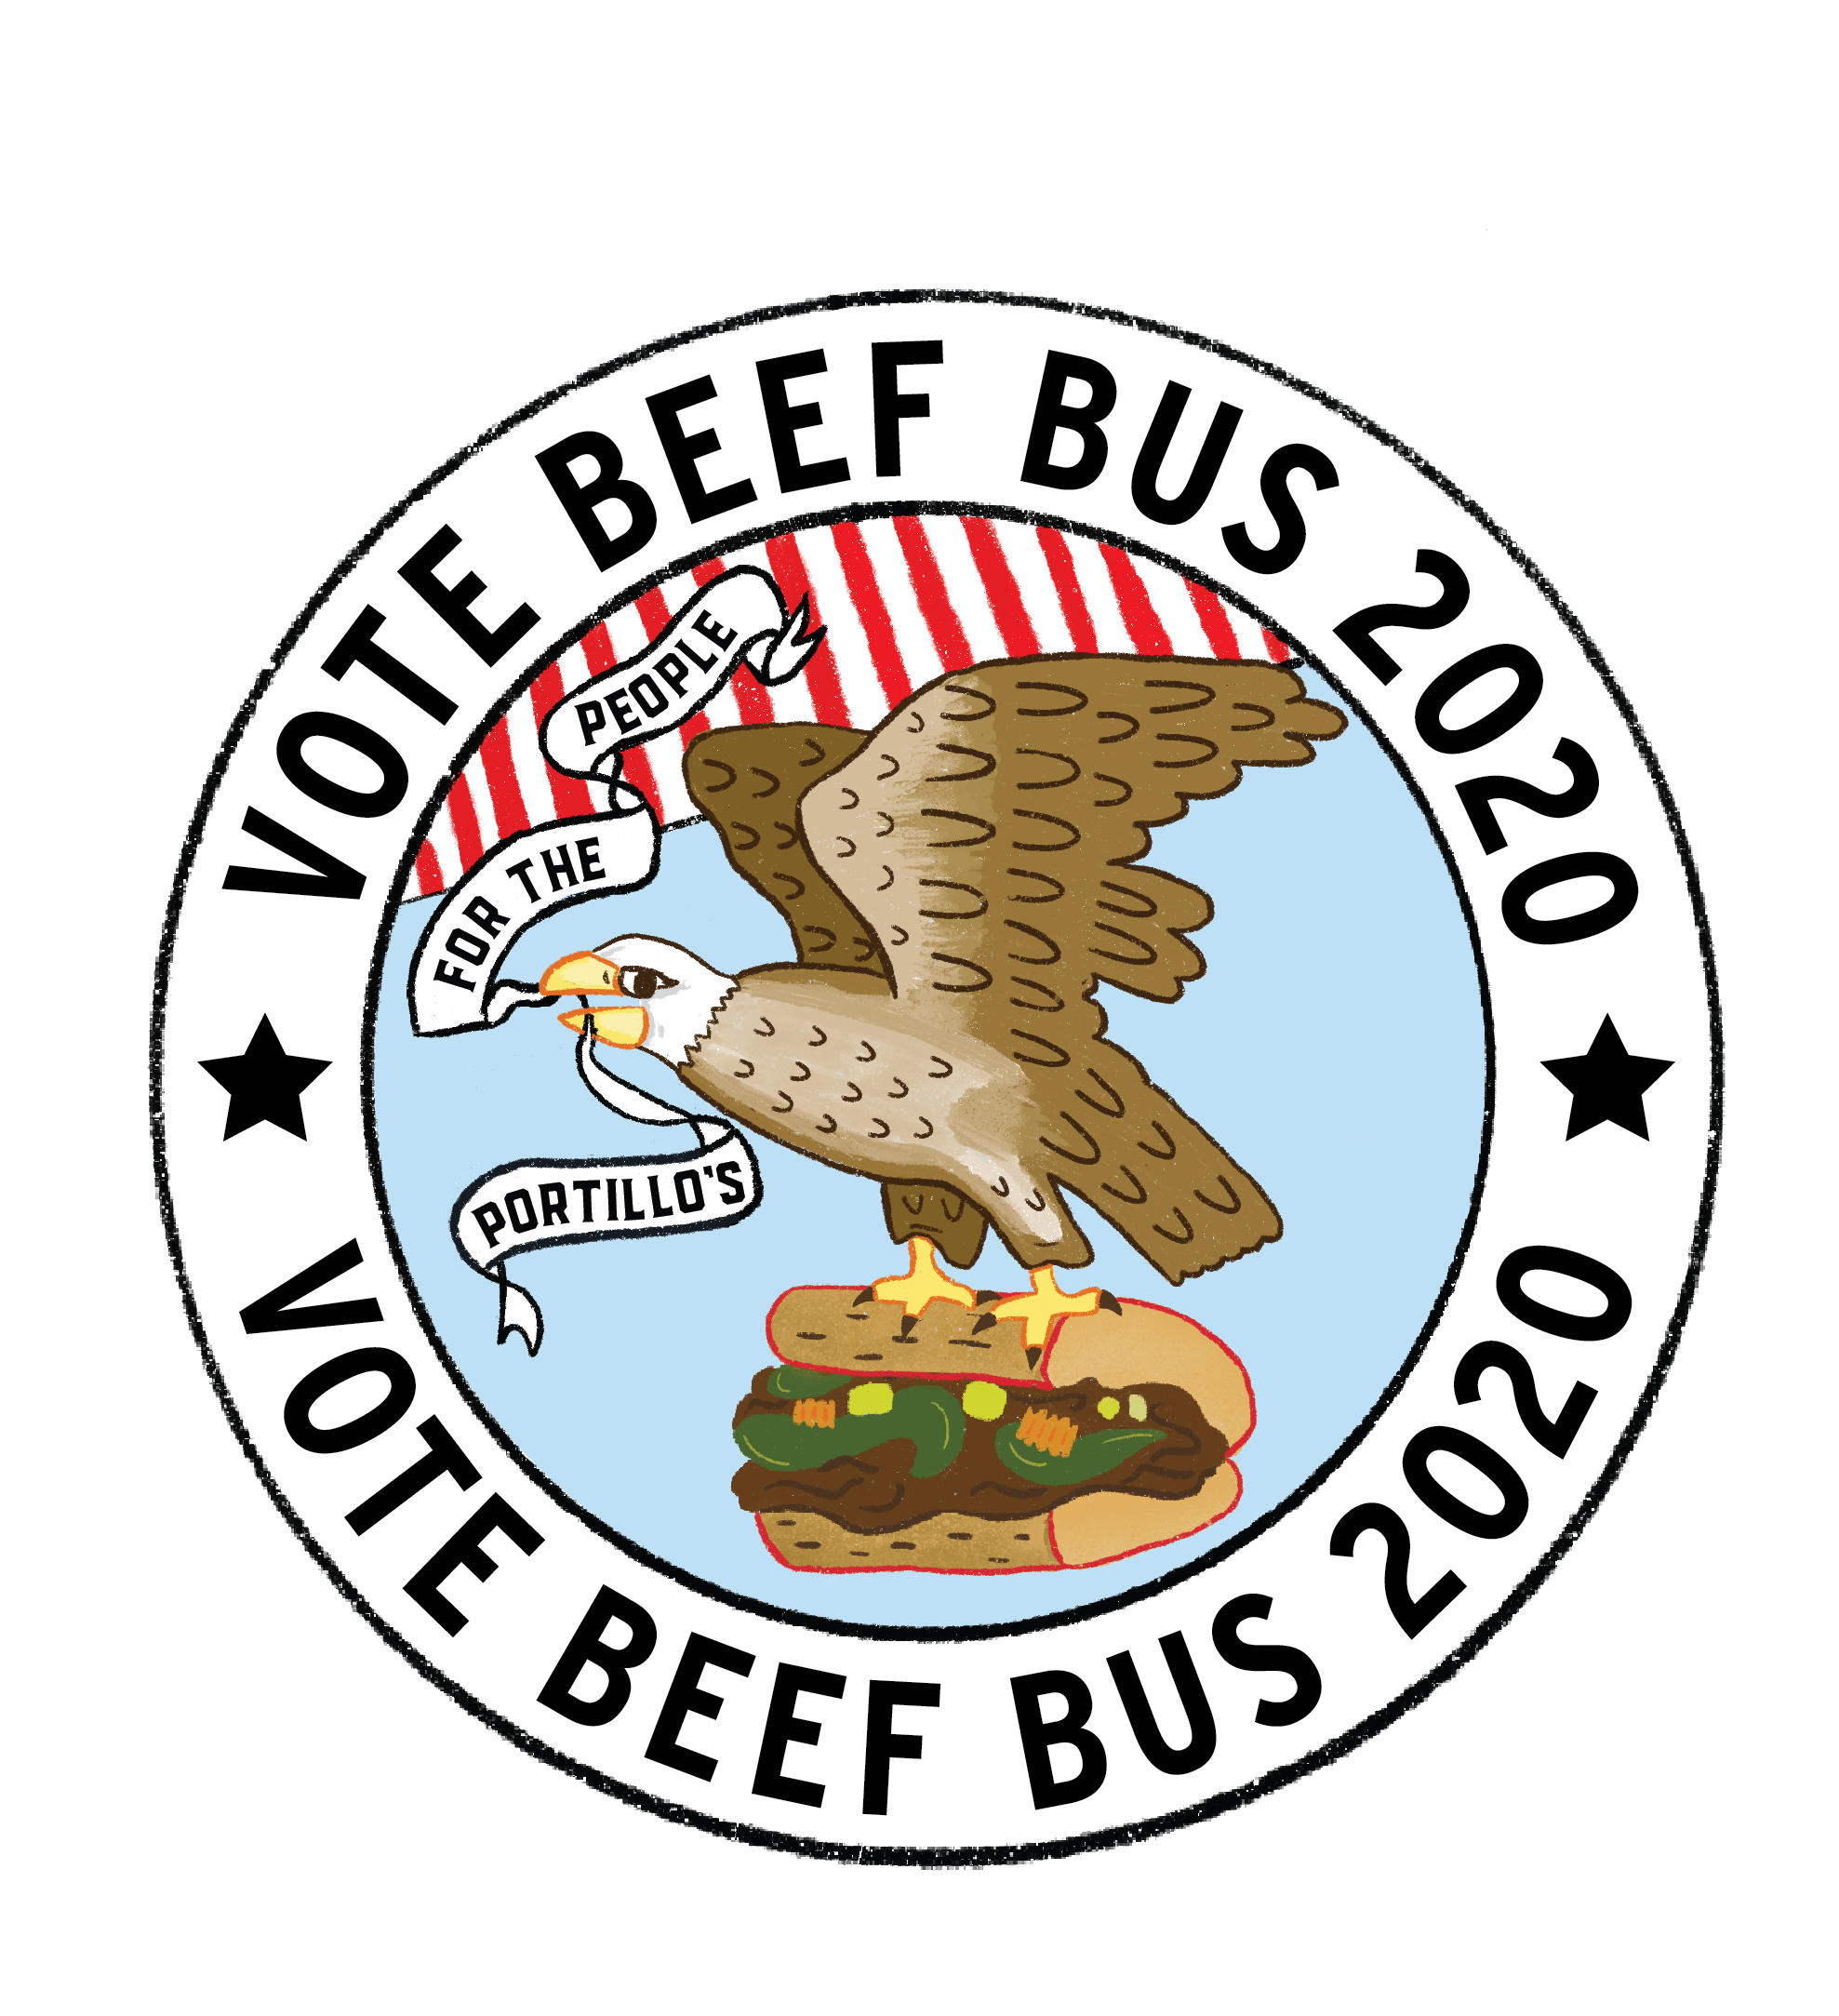 The Beef Bus is Here